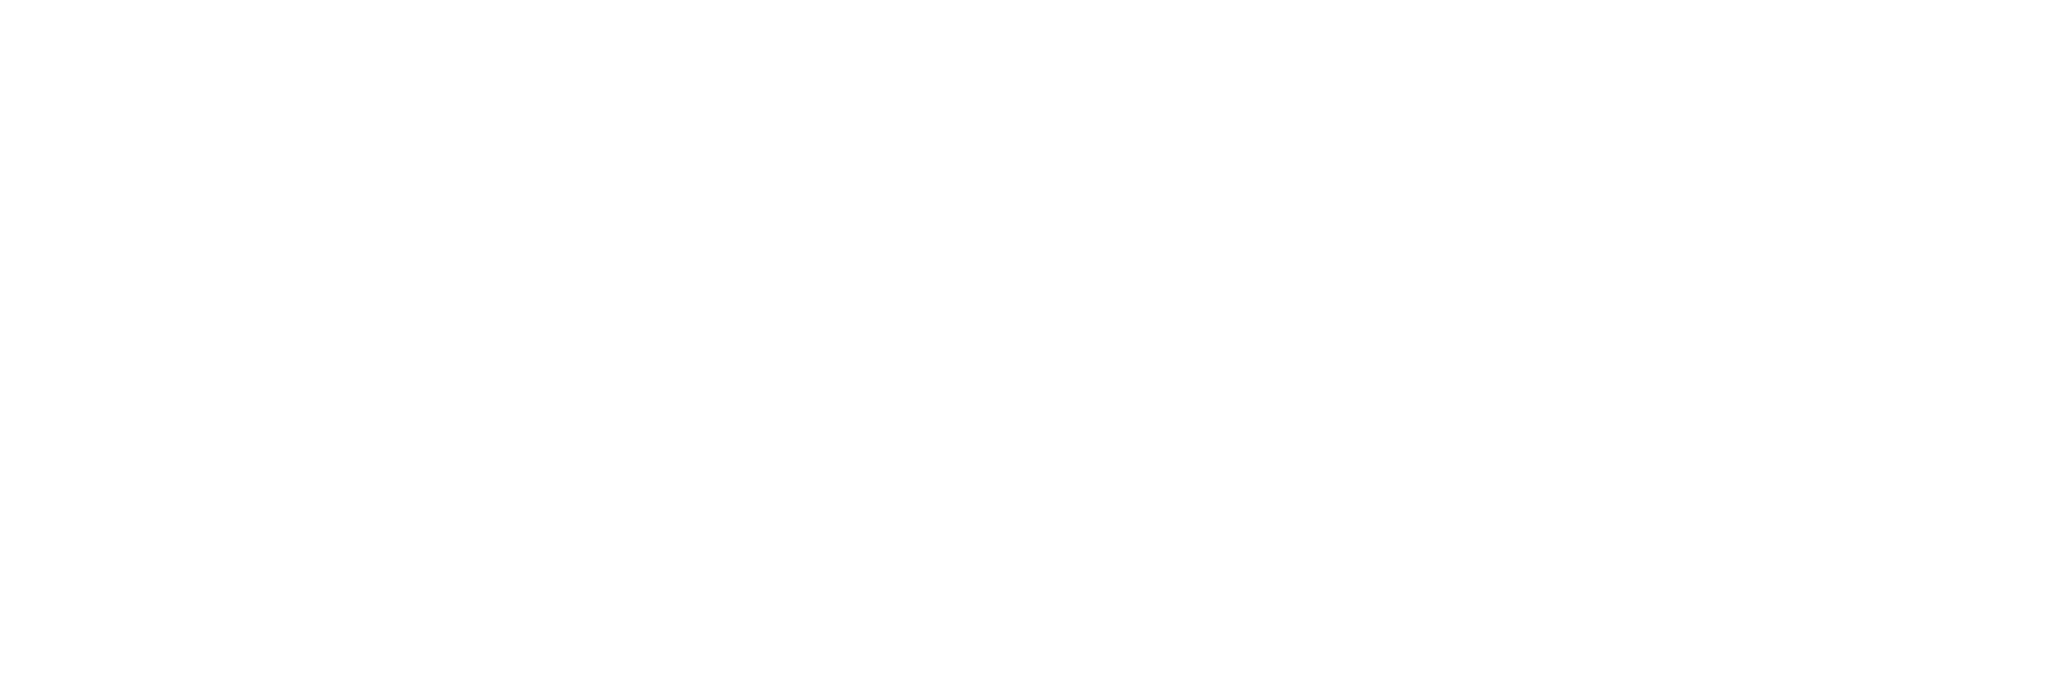 JUNLOG